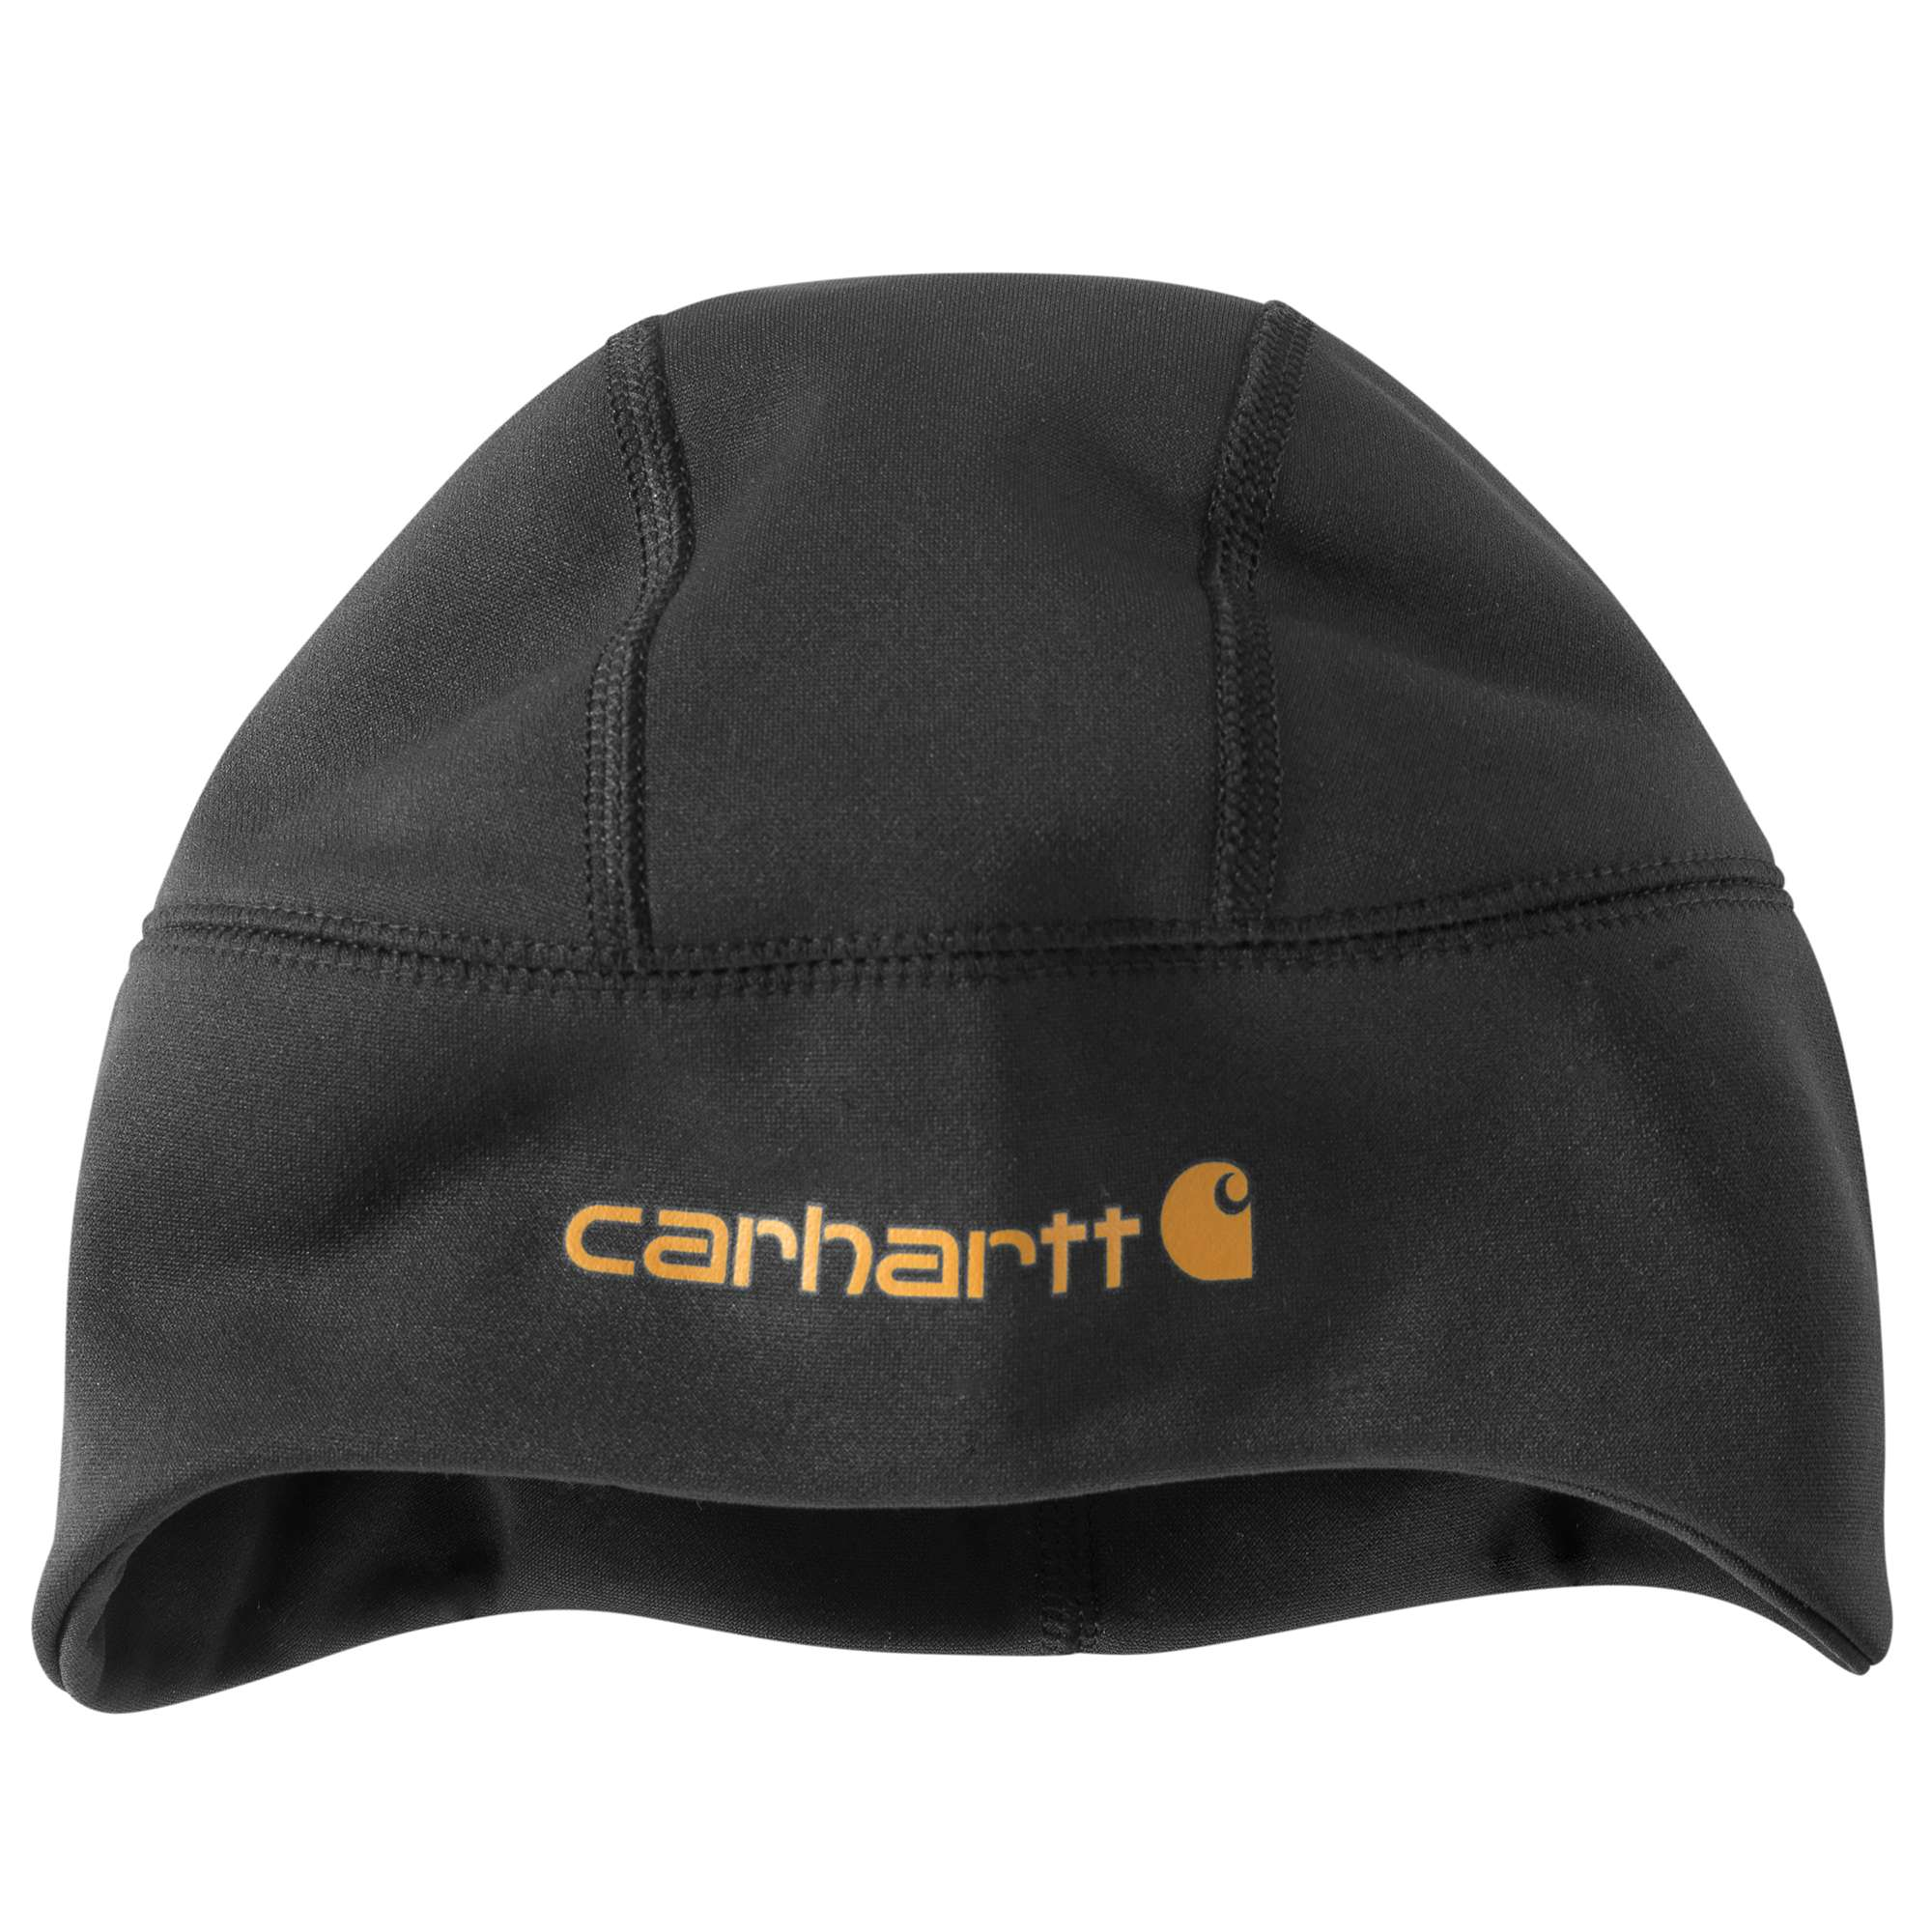 Carhartt M Force Extremes Beanie - Phelps USA 972050eaca7d